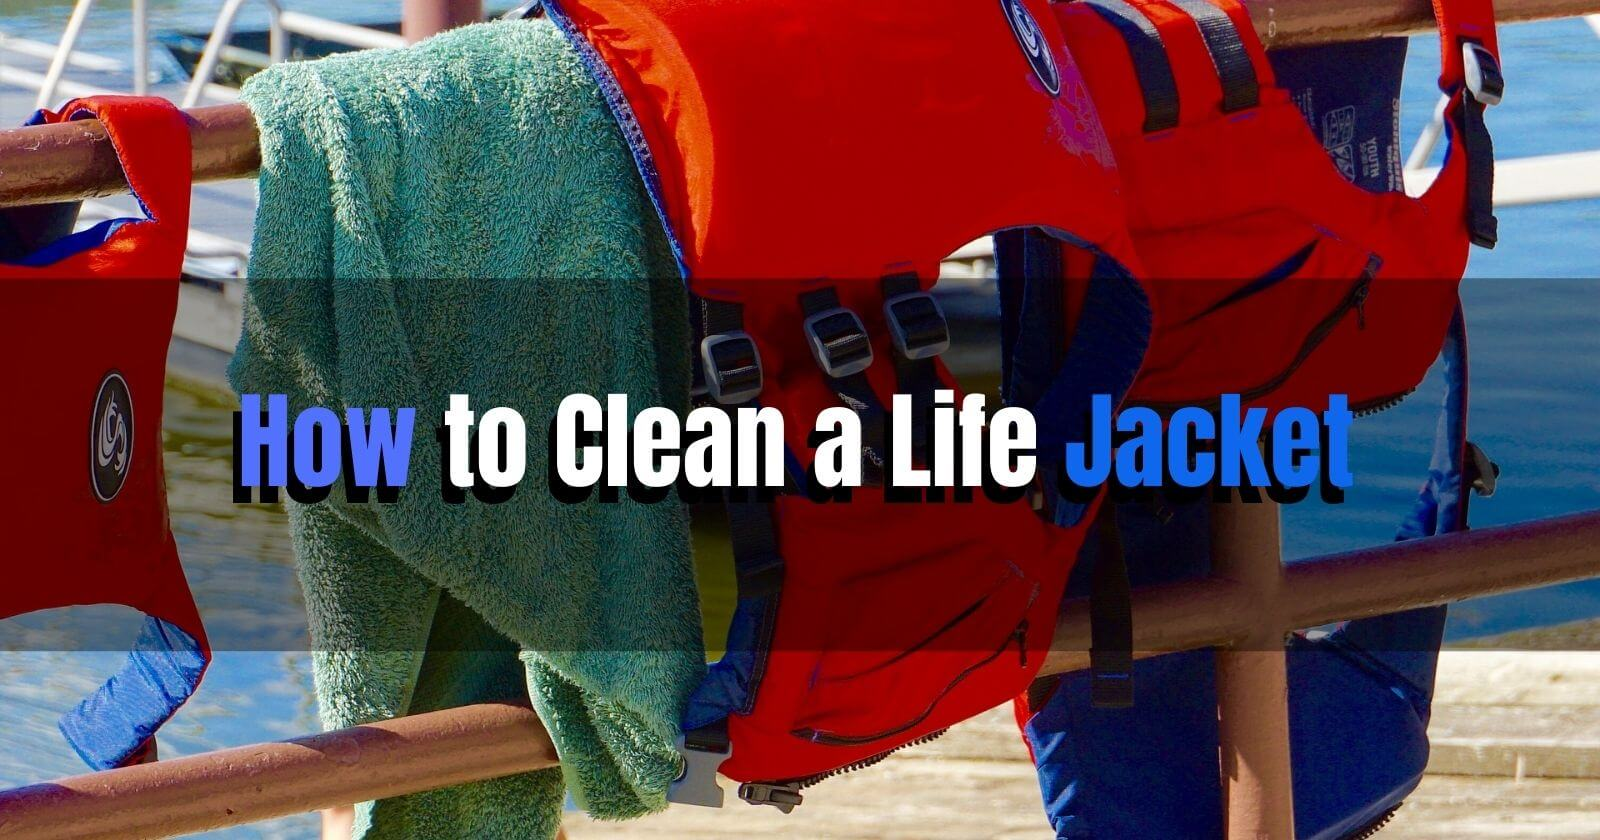 How to Clean a Life Jacket